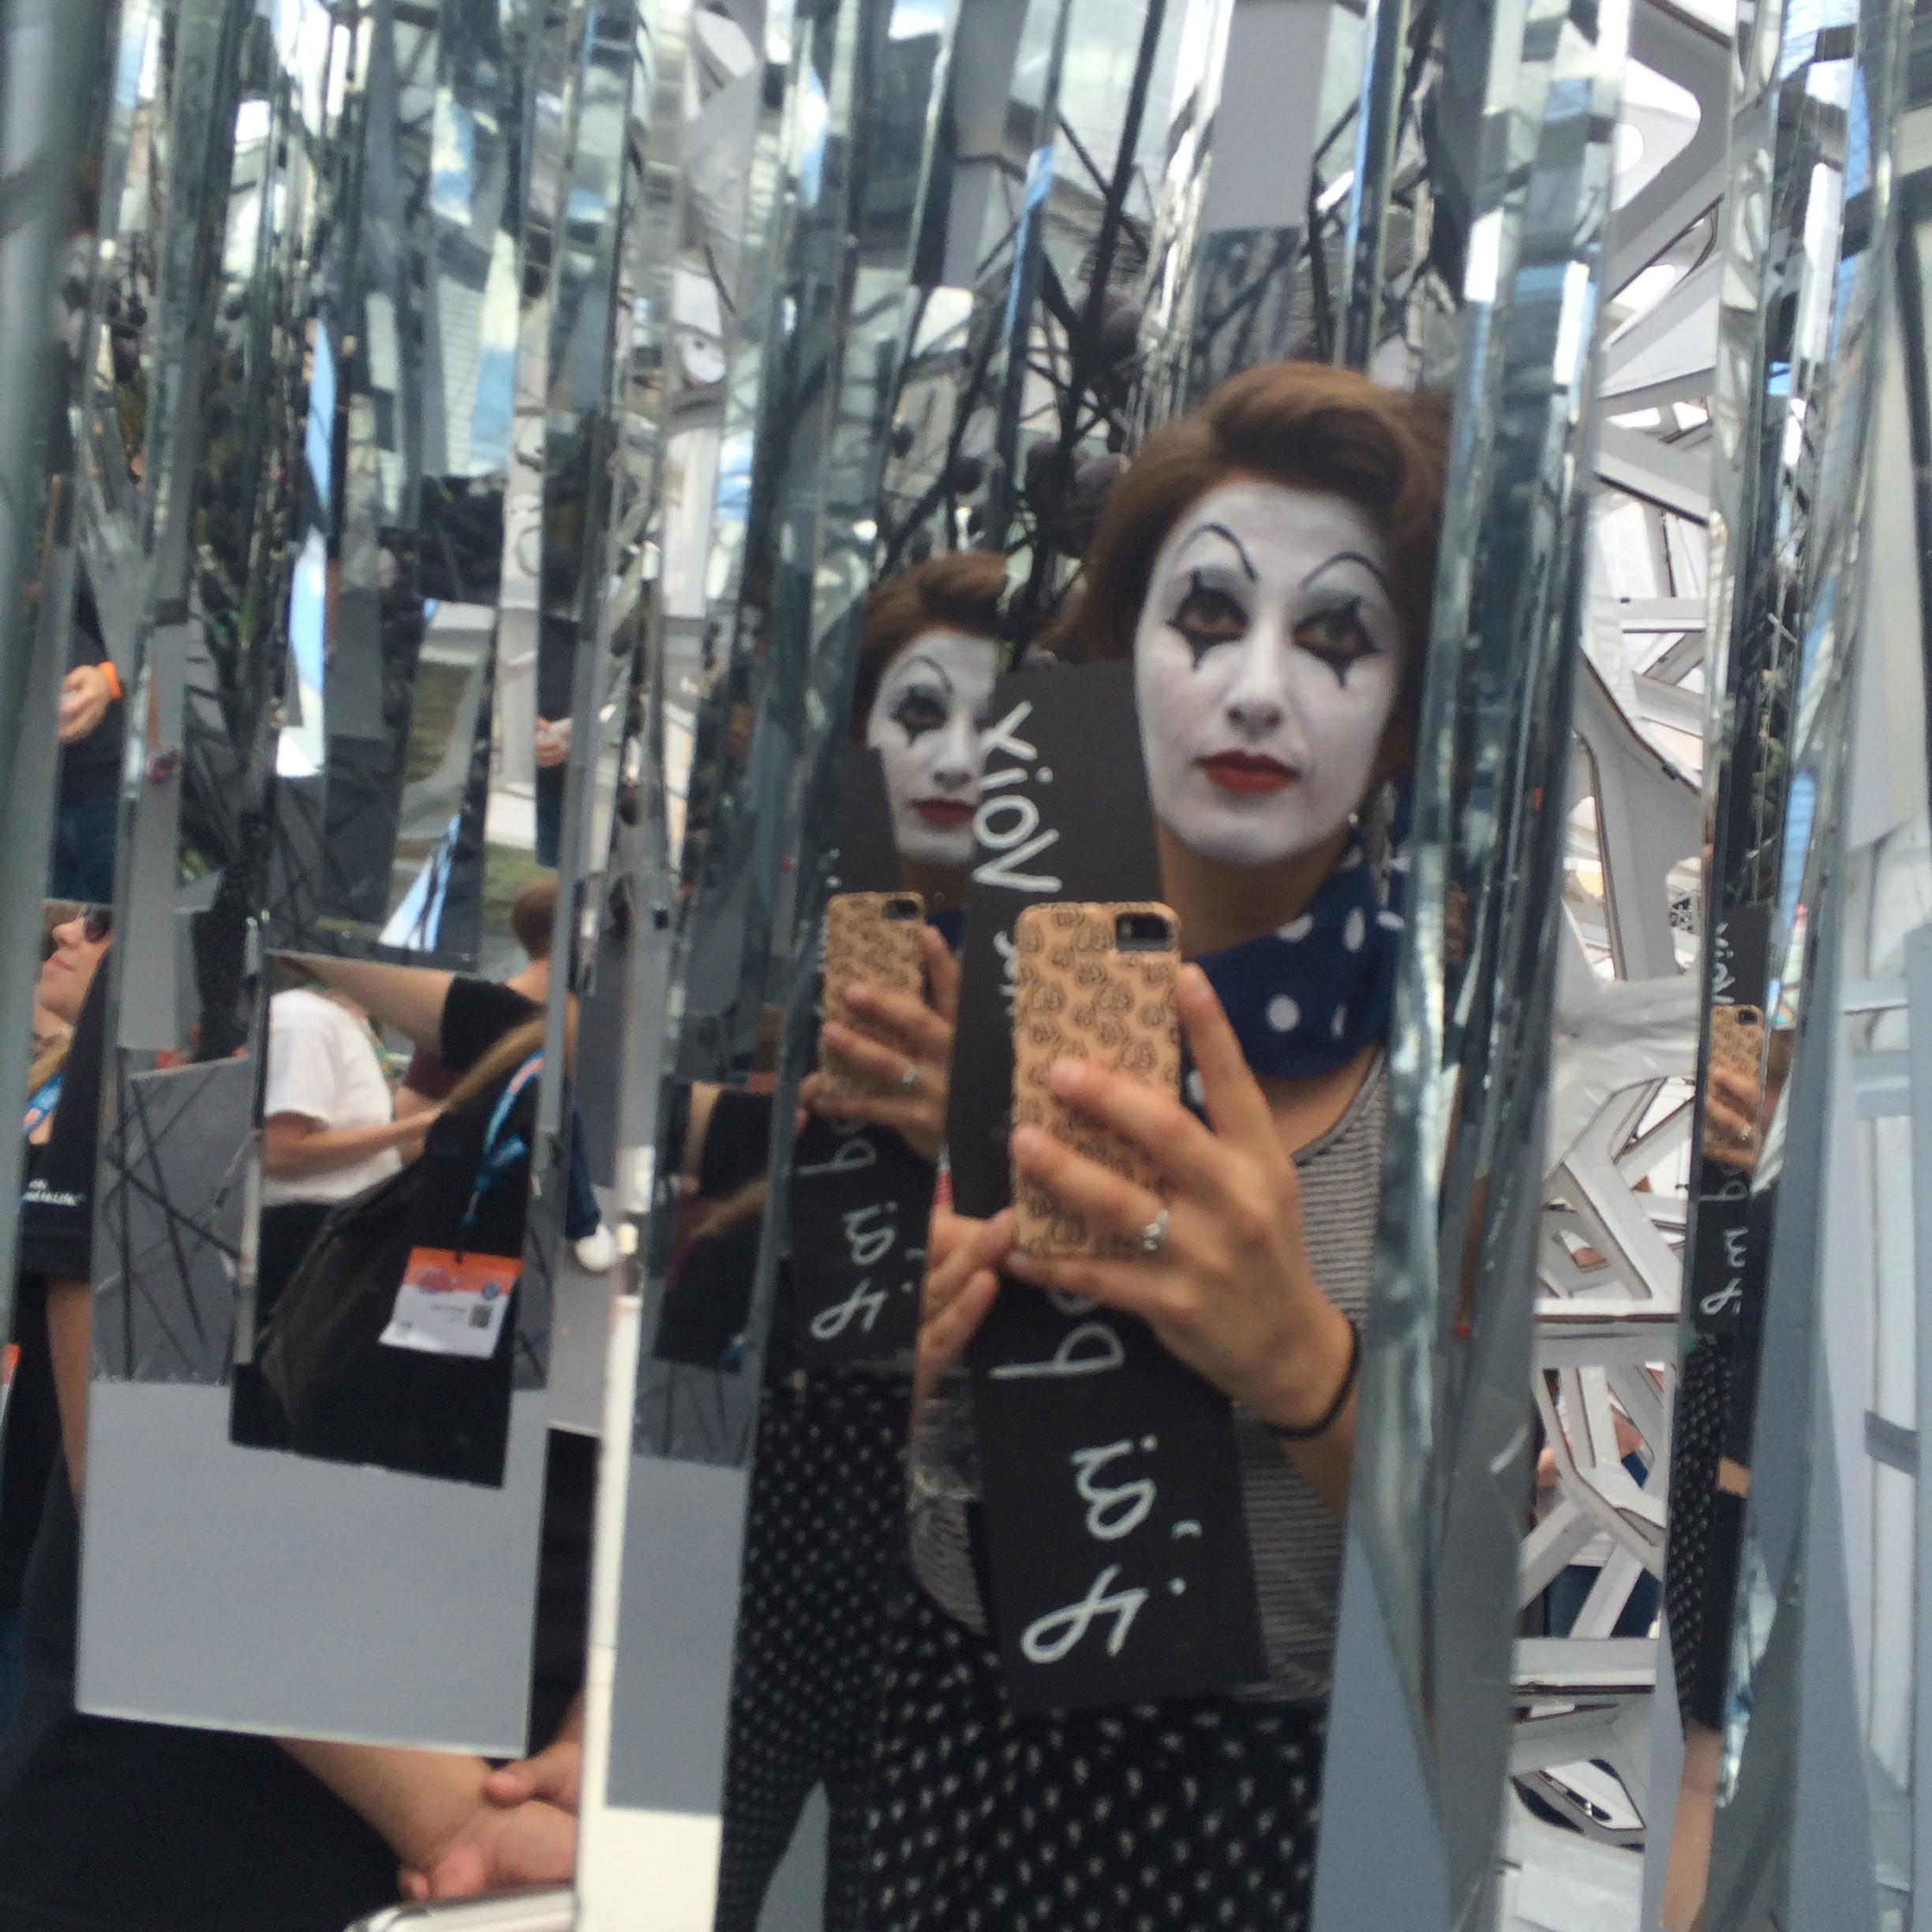 #SXSmime in scary hall of mirrors